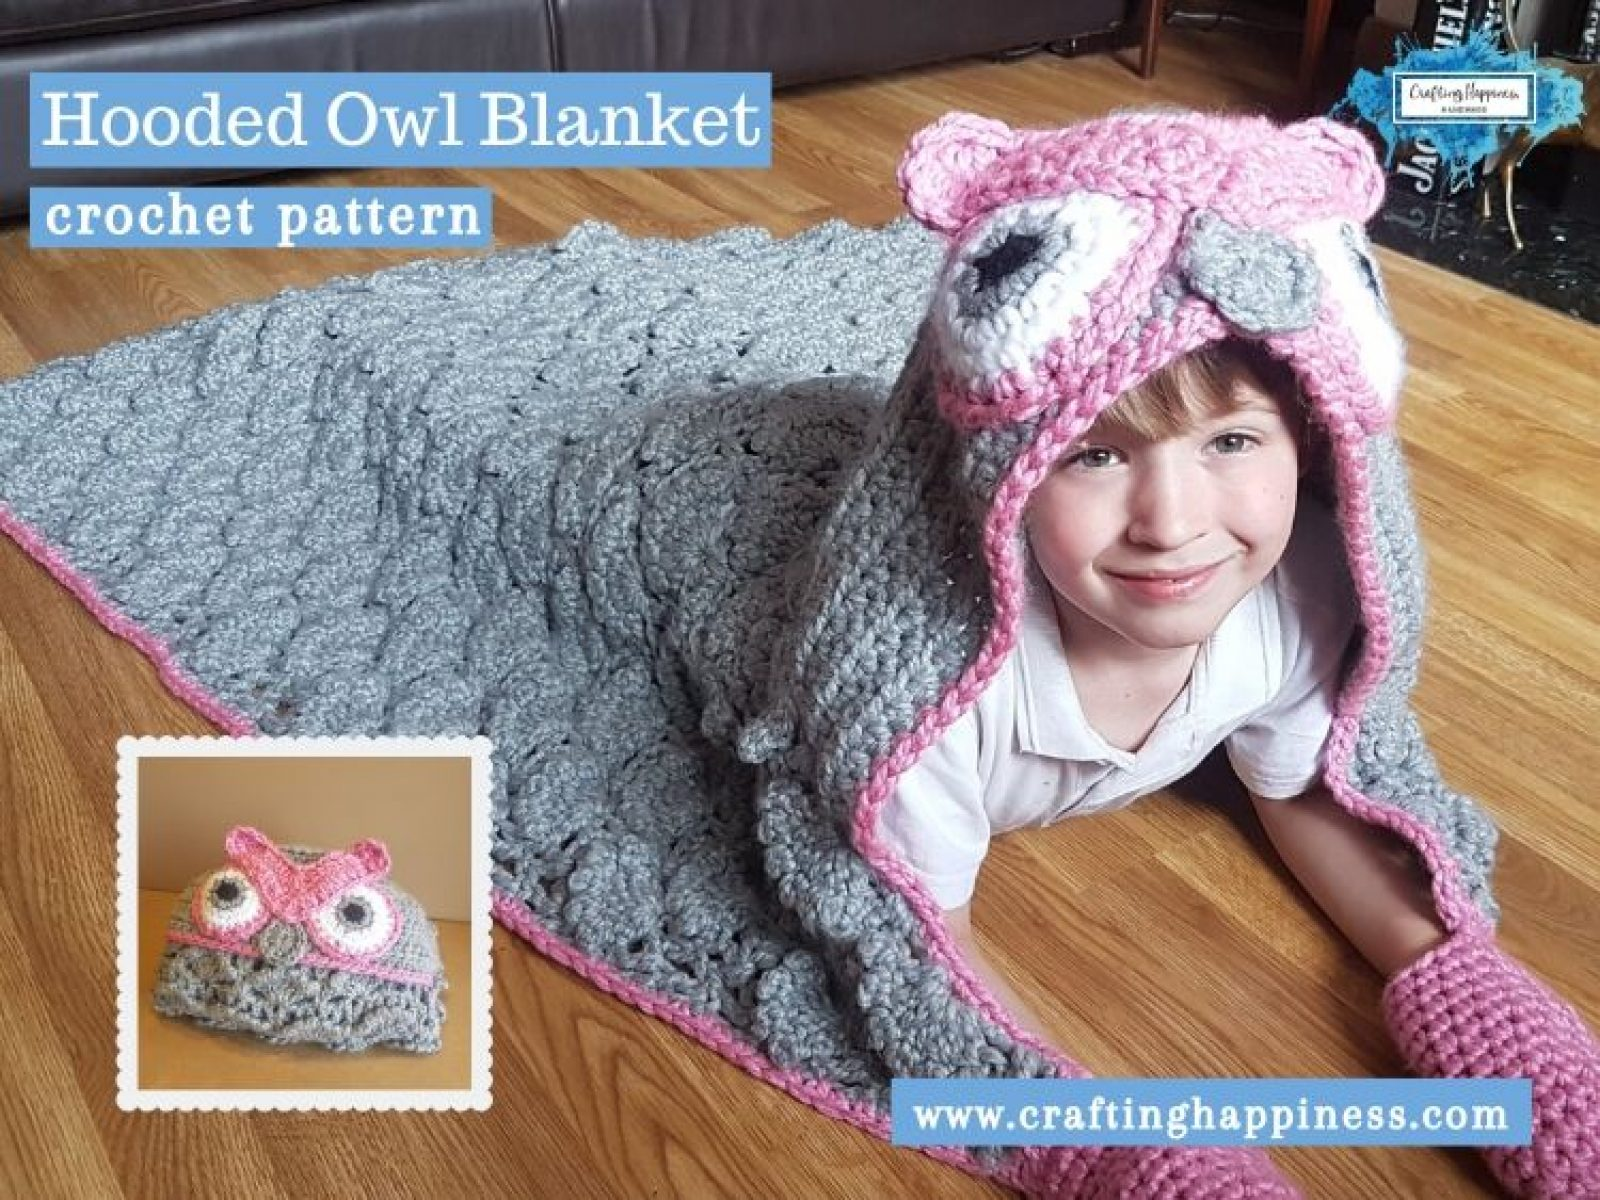 Hooded Owl Blanket by Crafting Happiness FACEBOOK POSTER